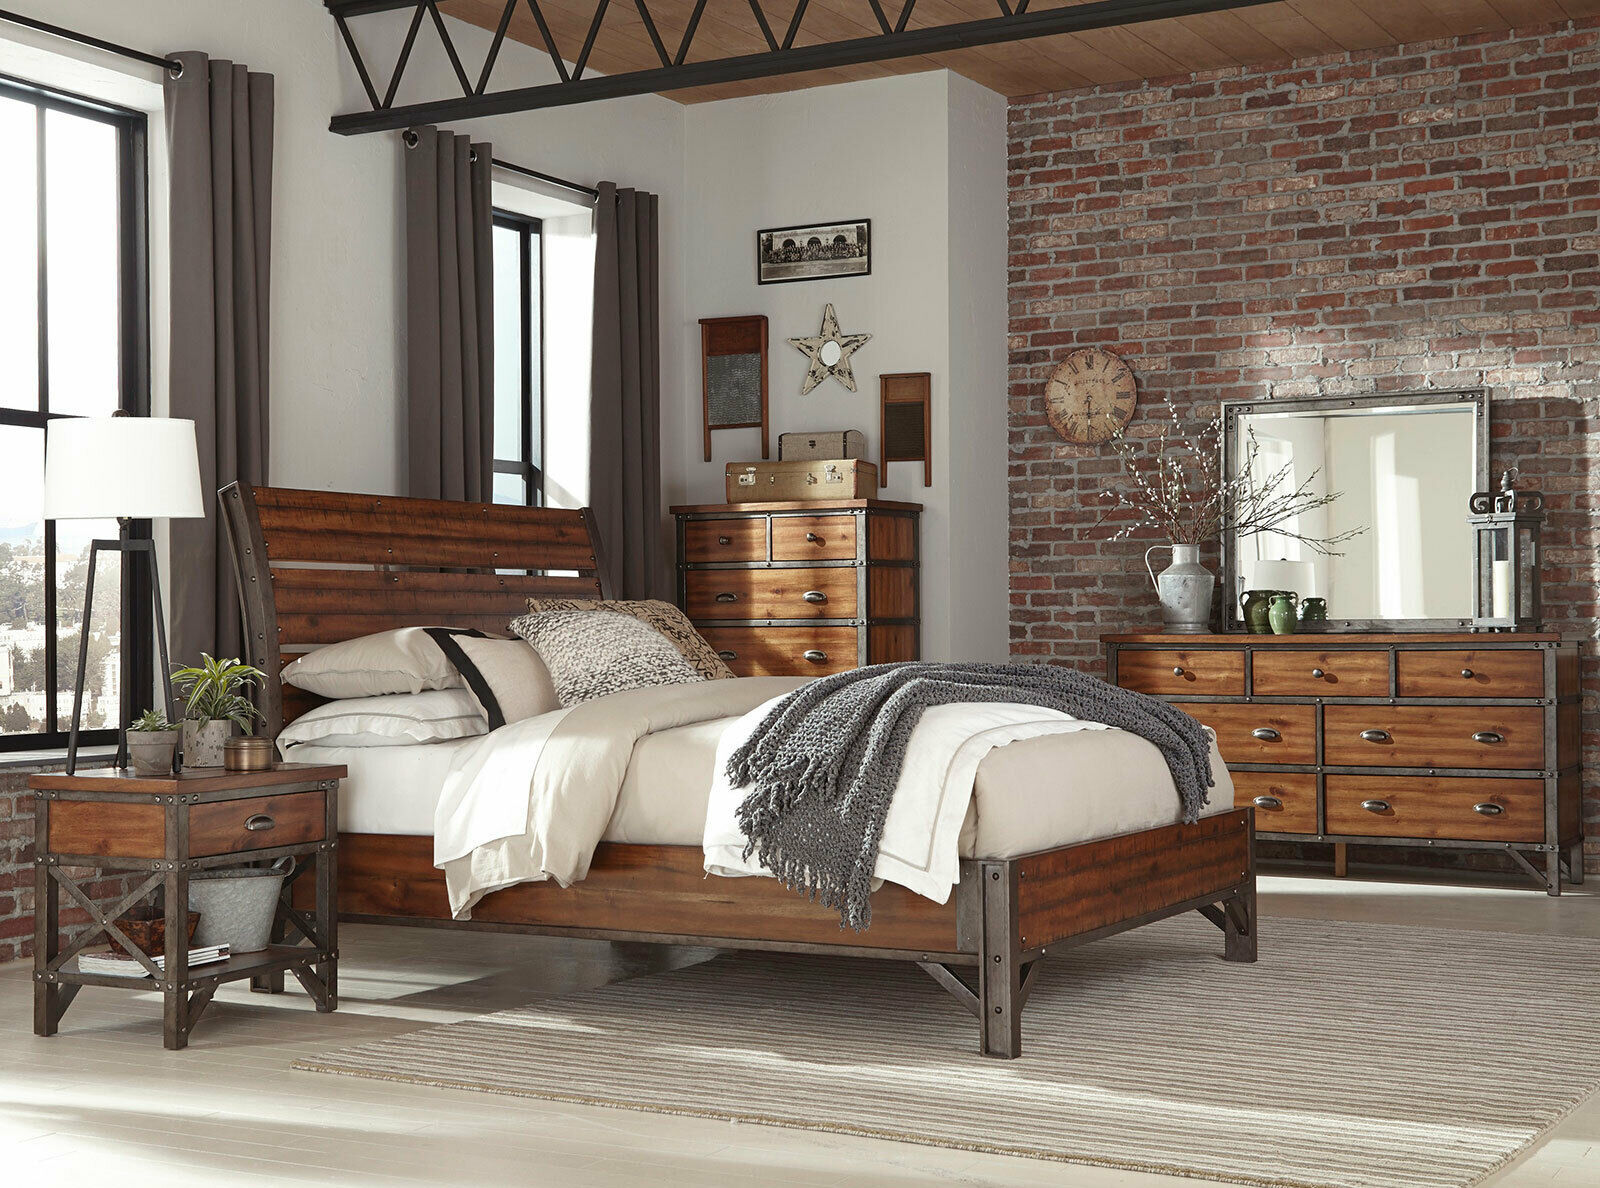 arthur industrial style brown bedroom furniture with 5 piece queen king bed set - bedroom sets